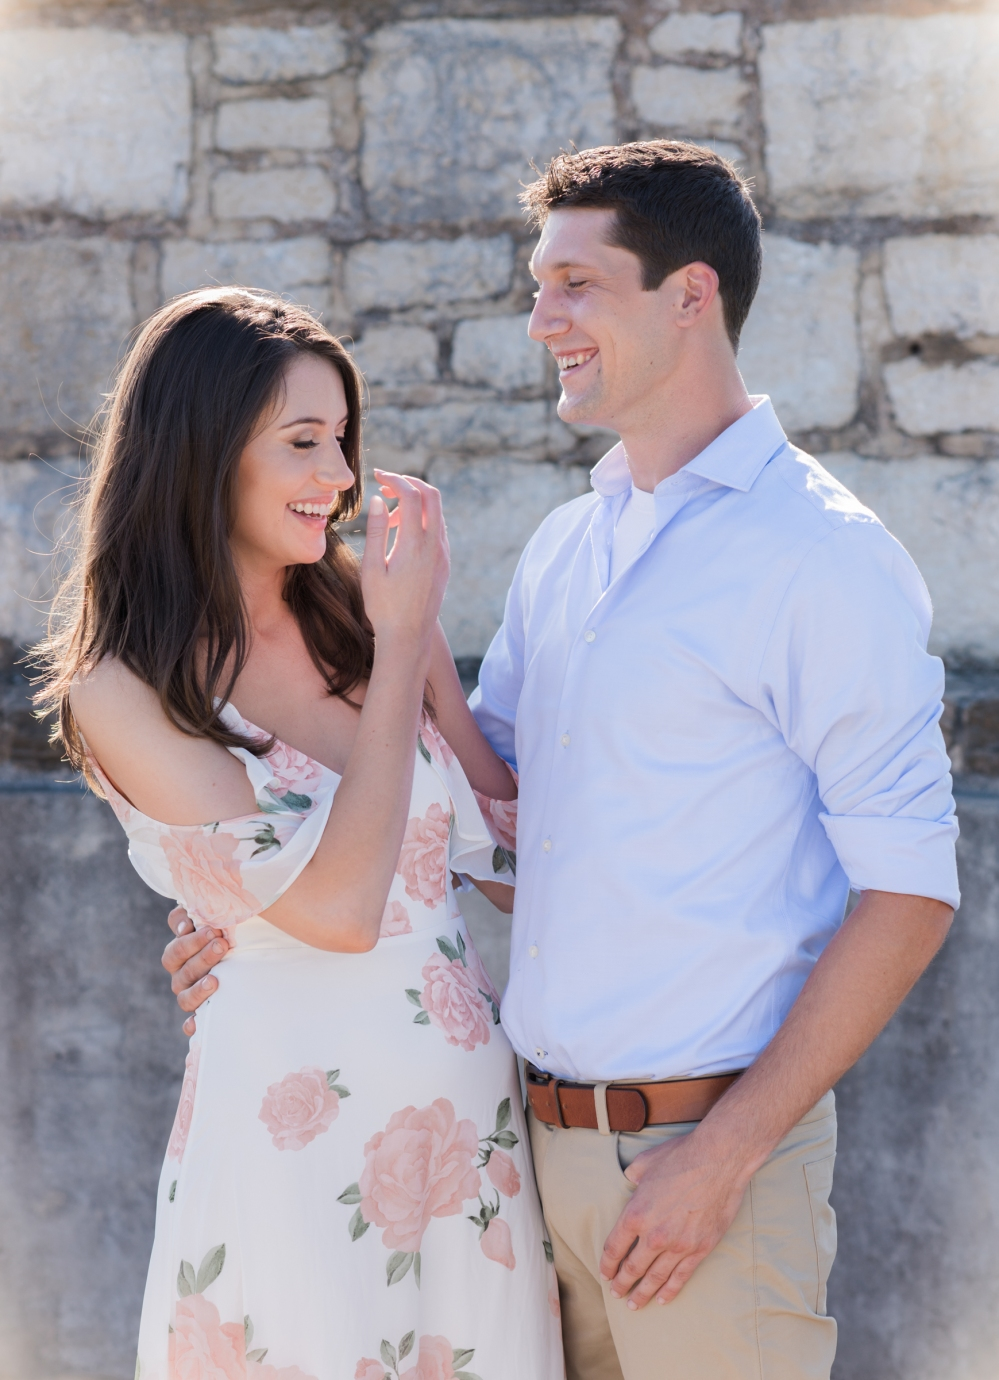 michelle_glenn_esession-49